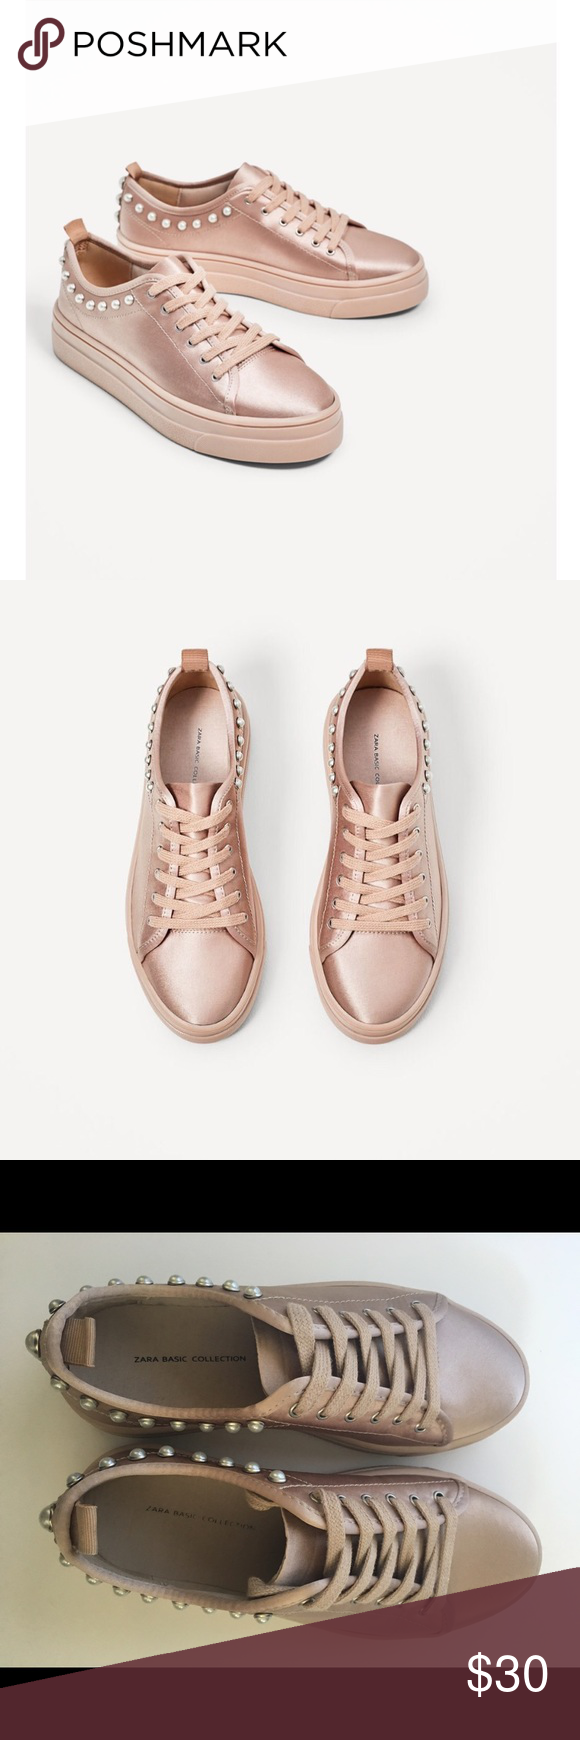 fd6d6fcca53 Zara- Satin Sneaker with Pearls Blush satin is really more of a taupe/blush